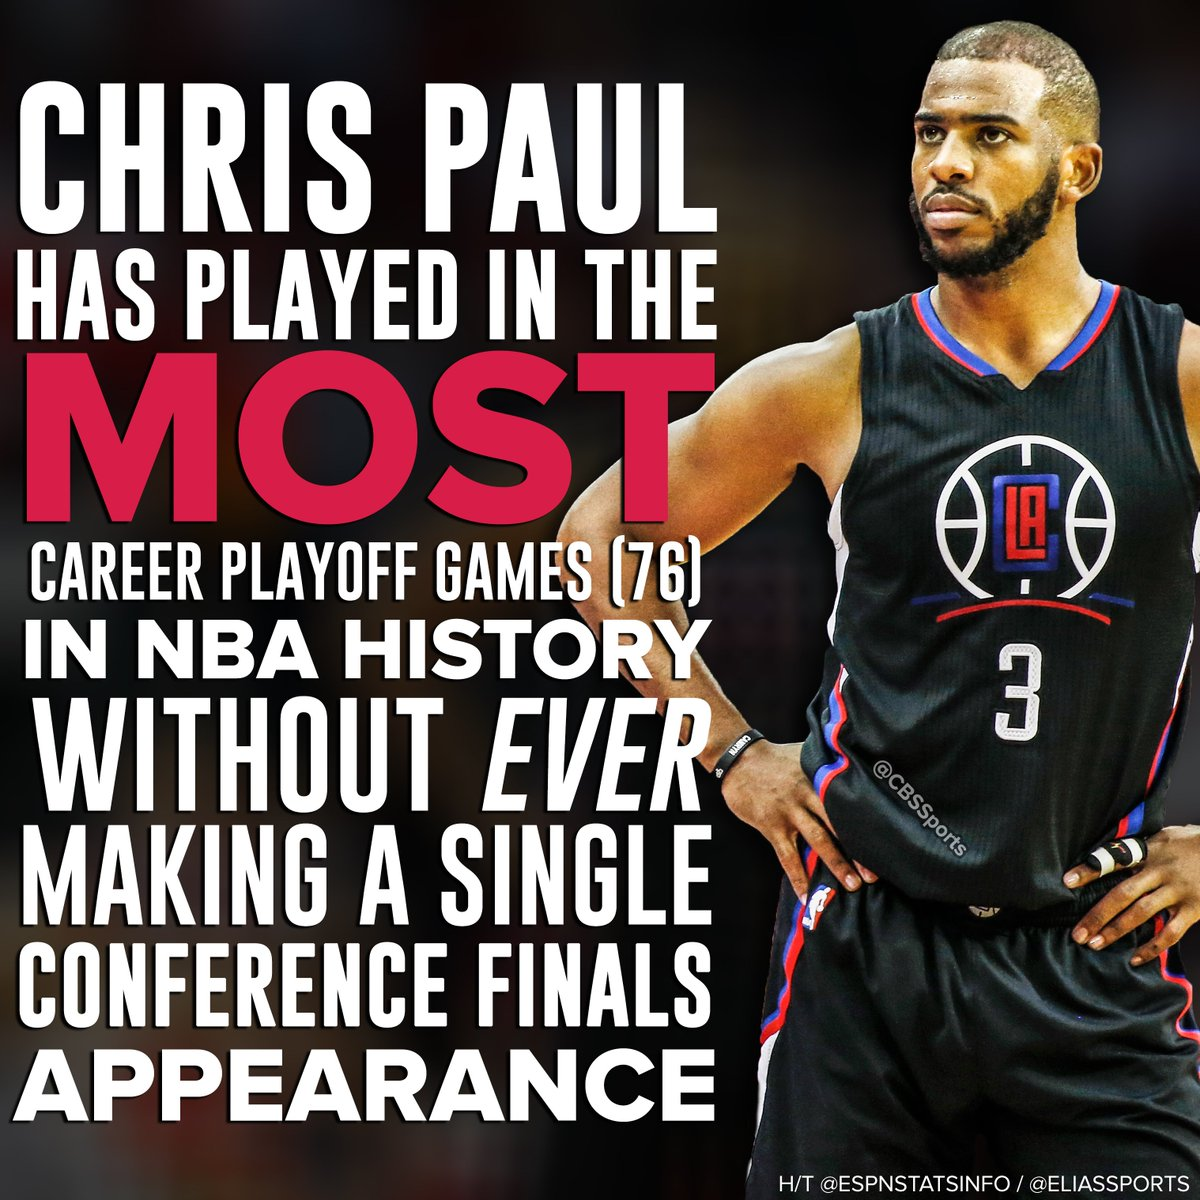 Chris Paul's postseason resume is not ideal. https://t.co/hau471YFrr